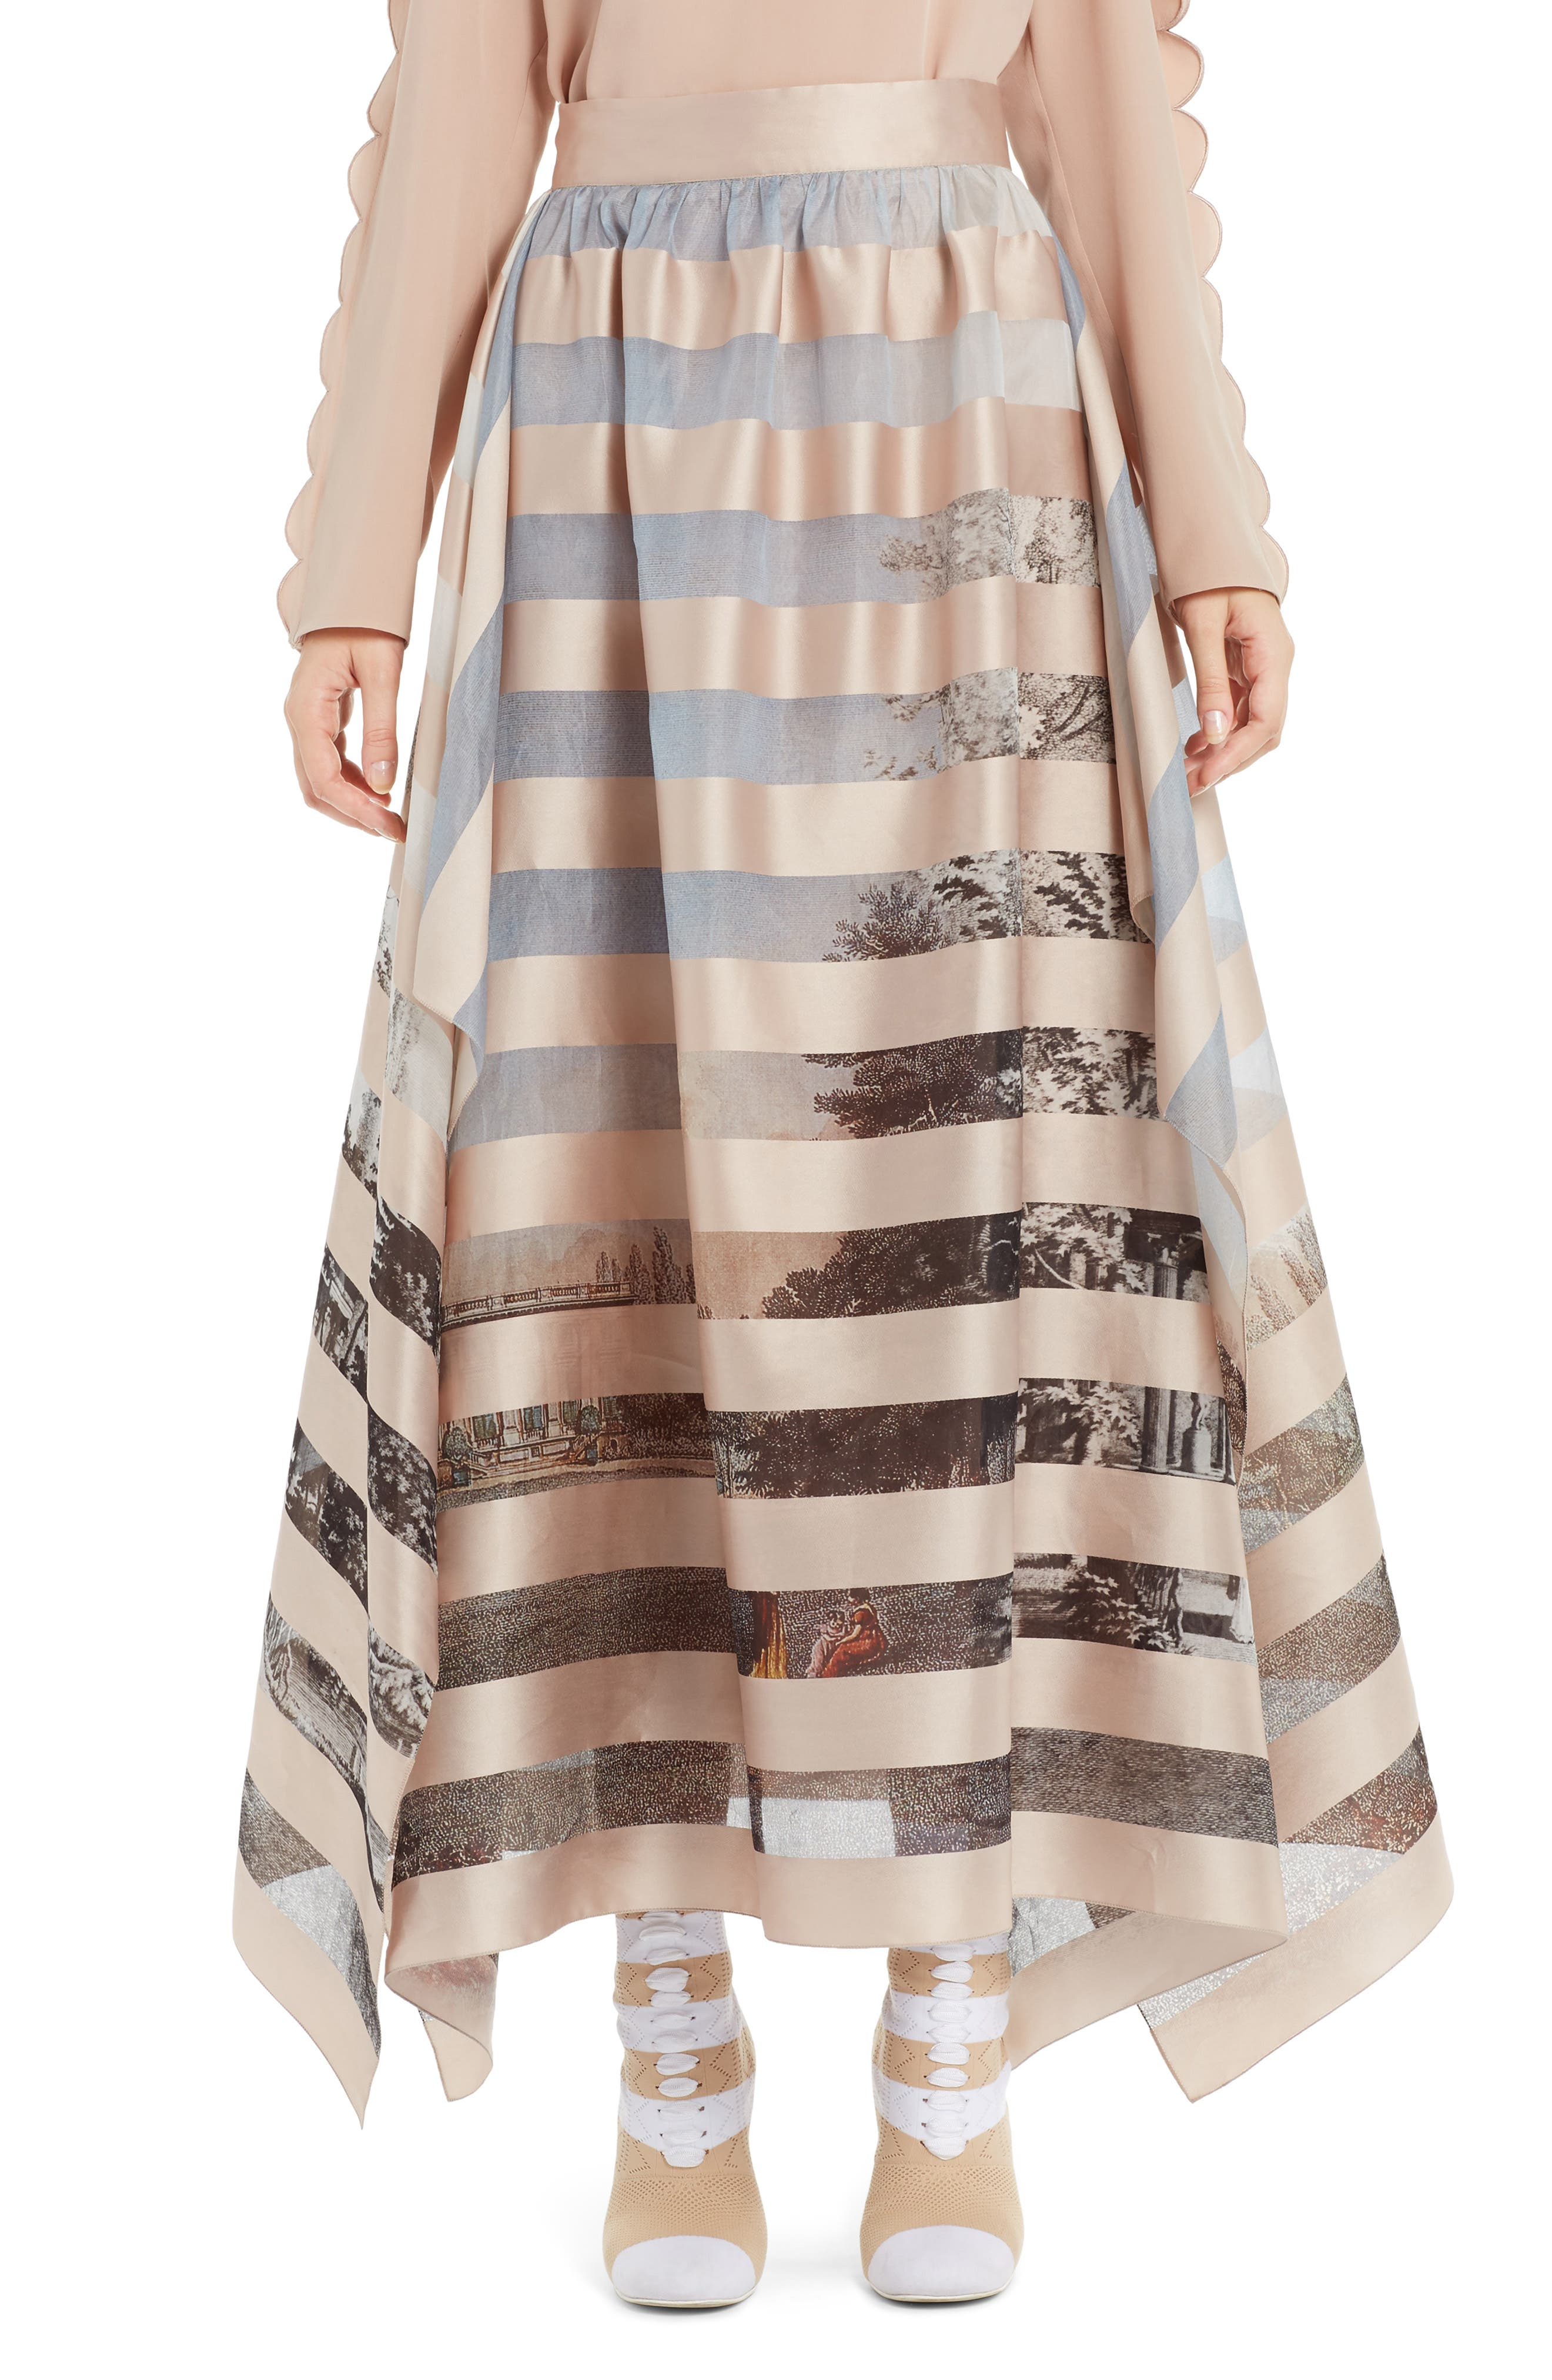 FENDI Stripe Satin Organza Ball Skirt